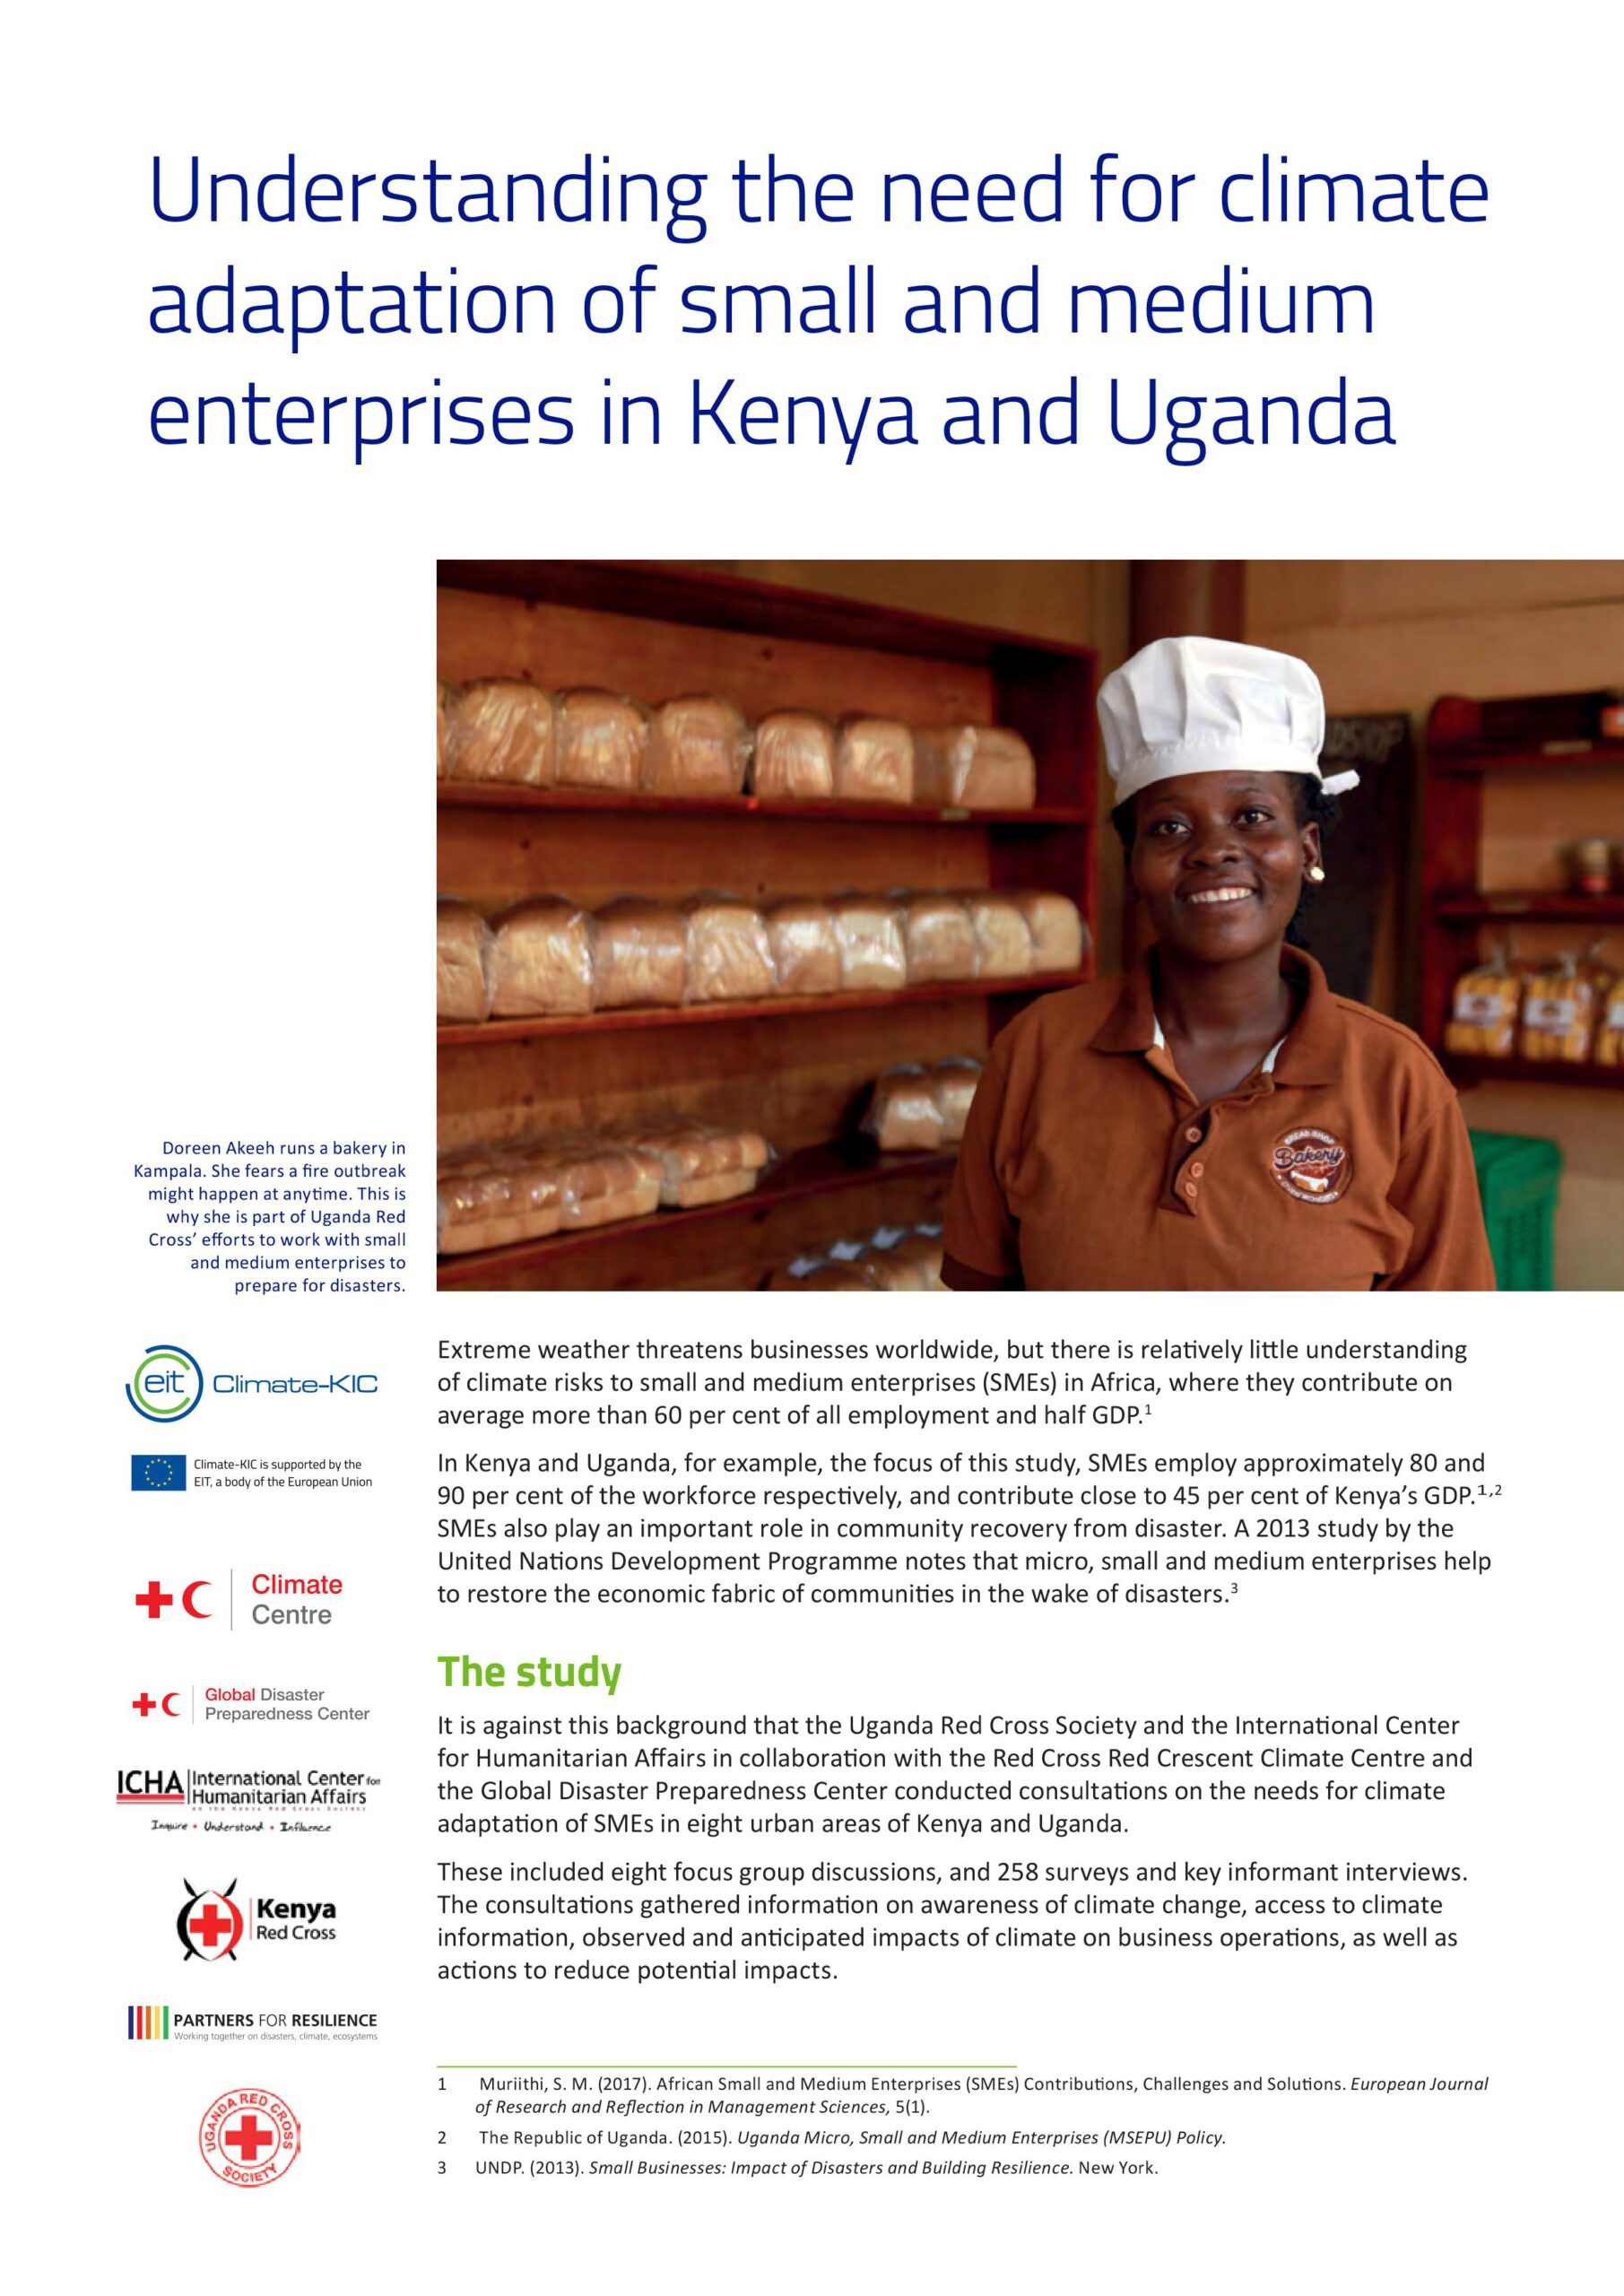 Understanding the need for climate adaptation of small and medium enterprises in Kenya and Uganda